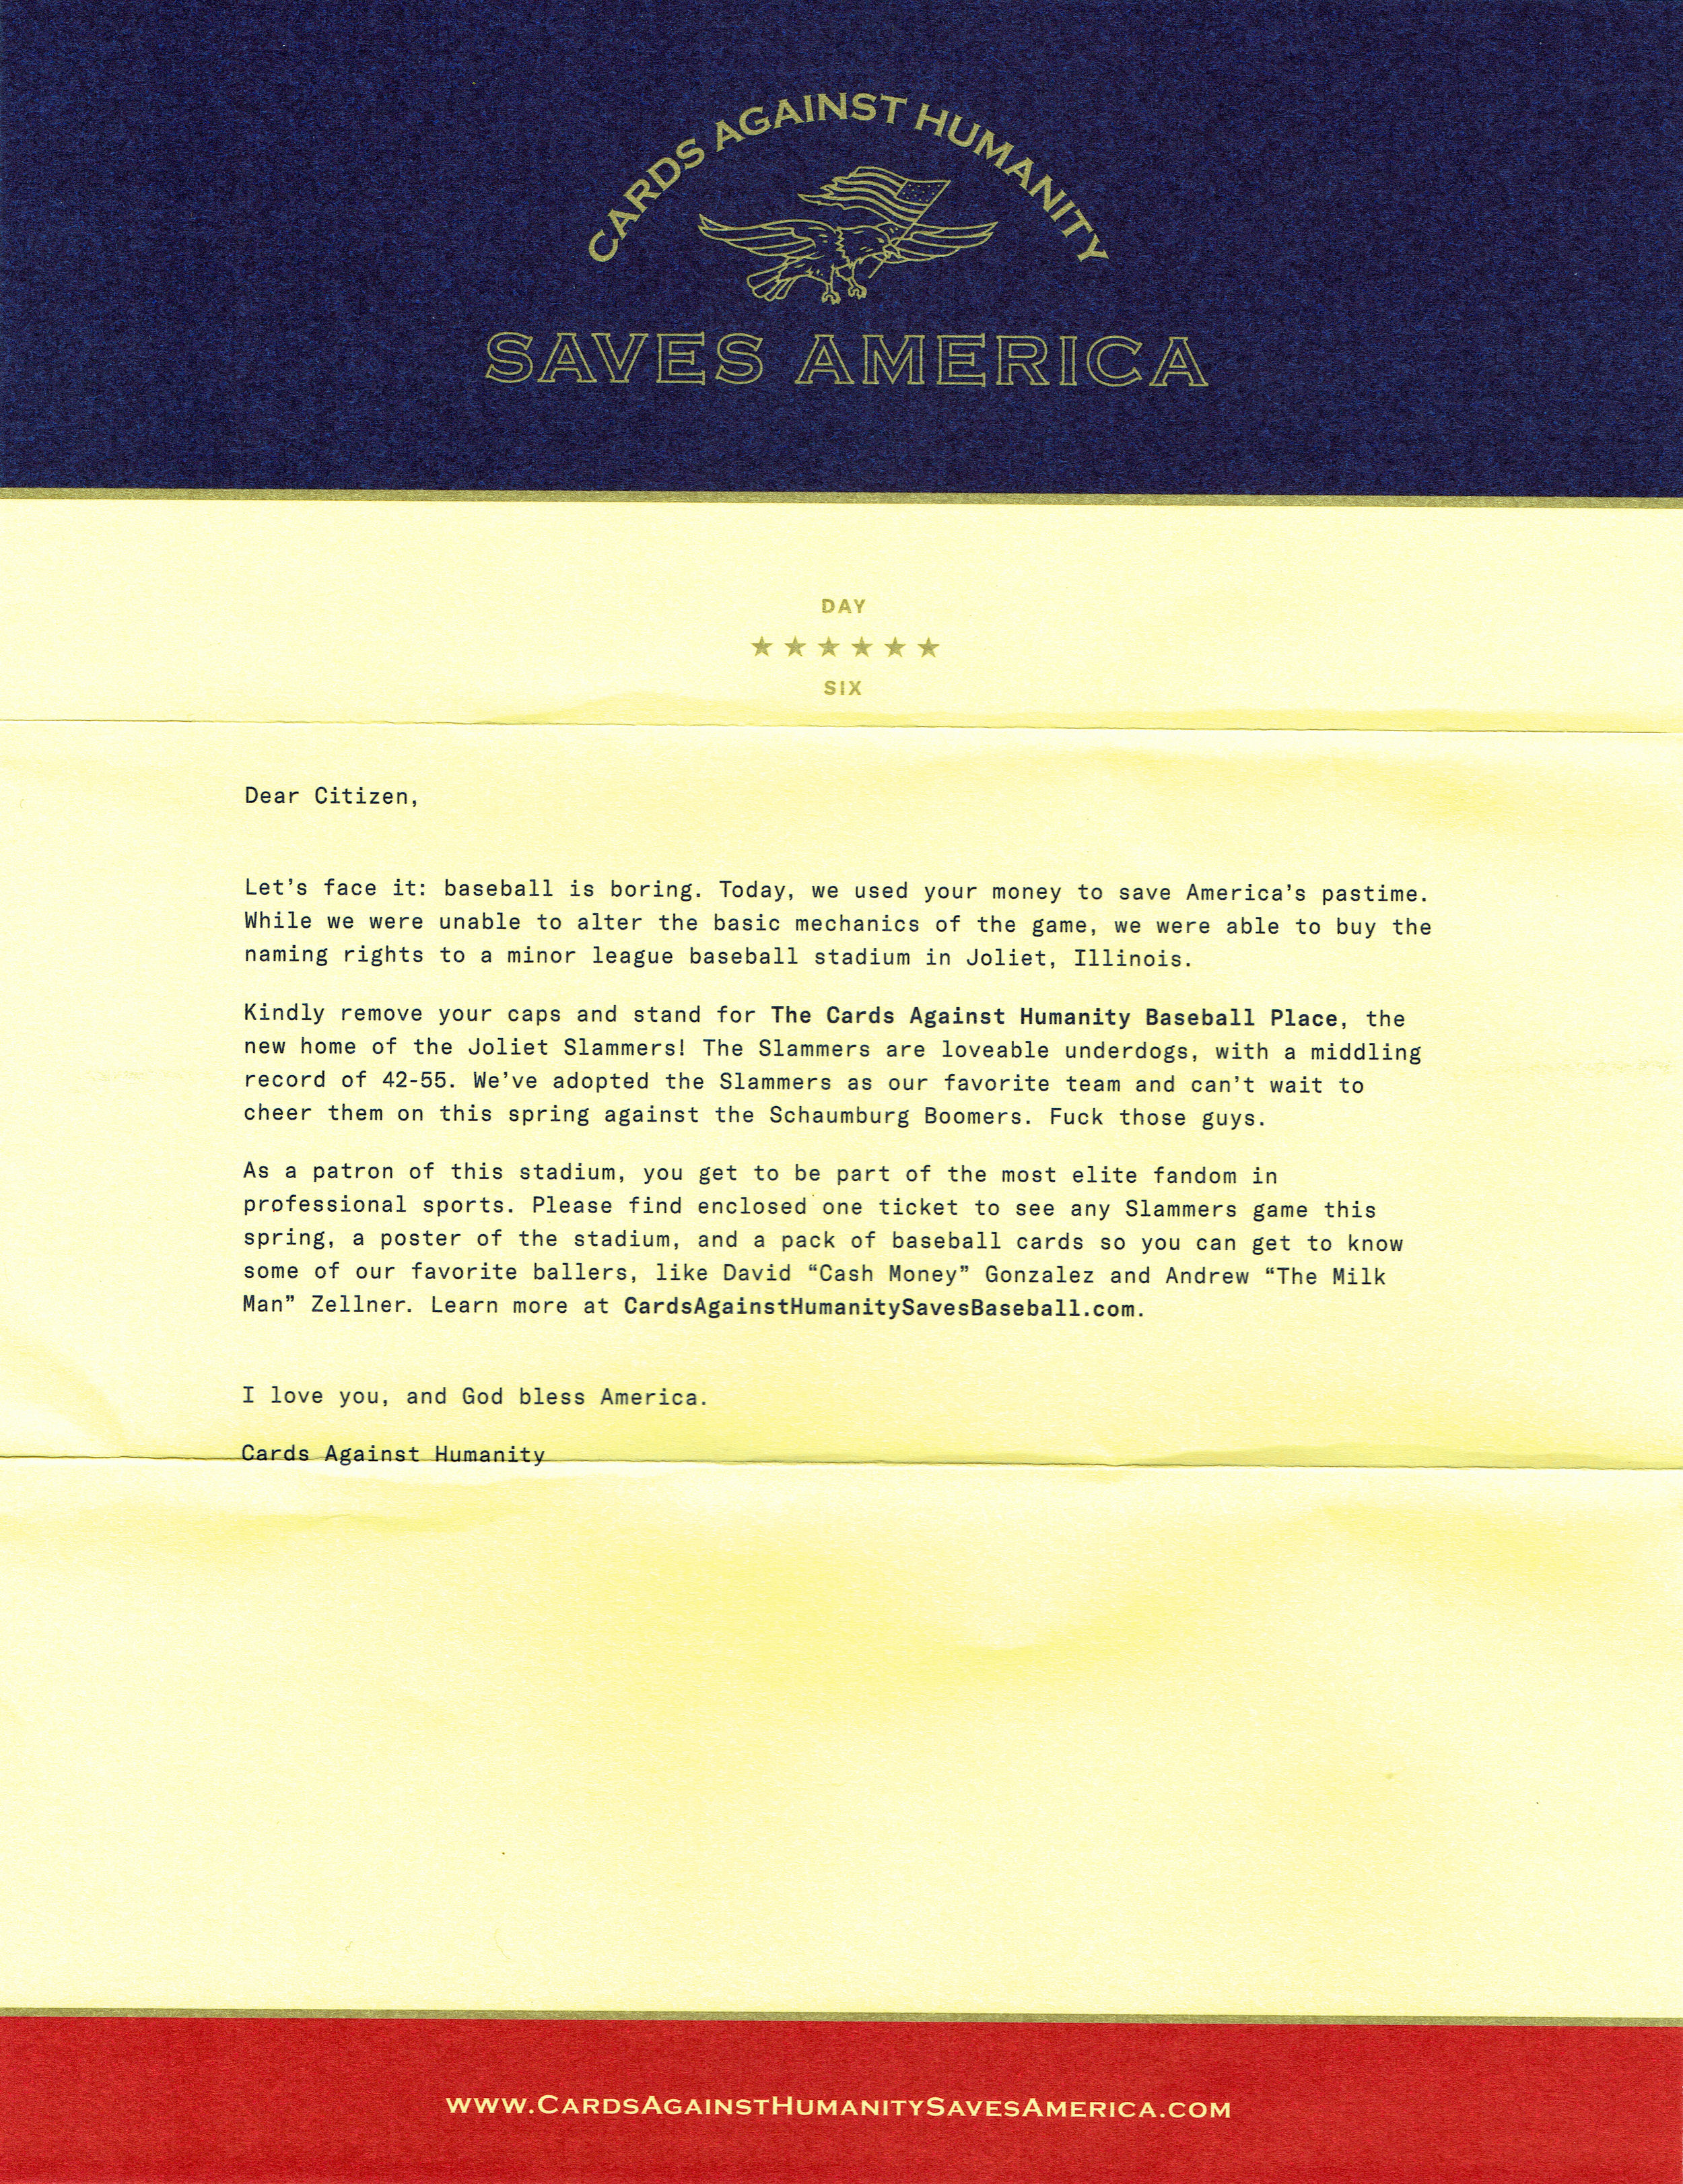 Cards Against Humanity Saves America Day 6 Cover Letter